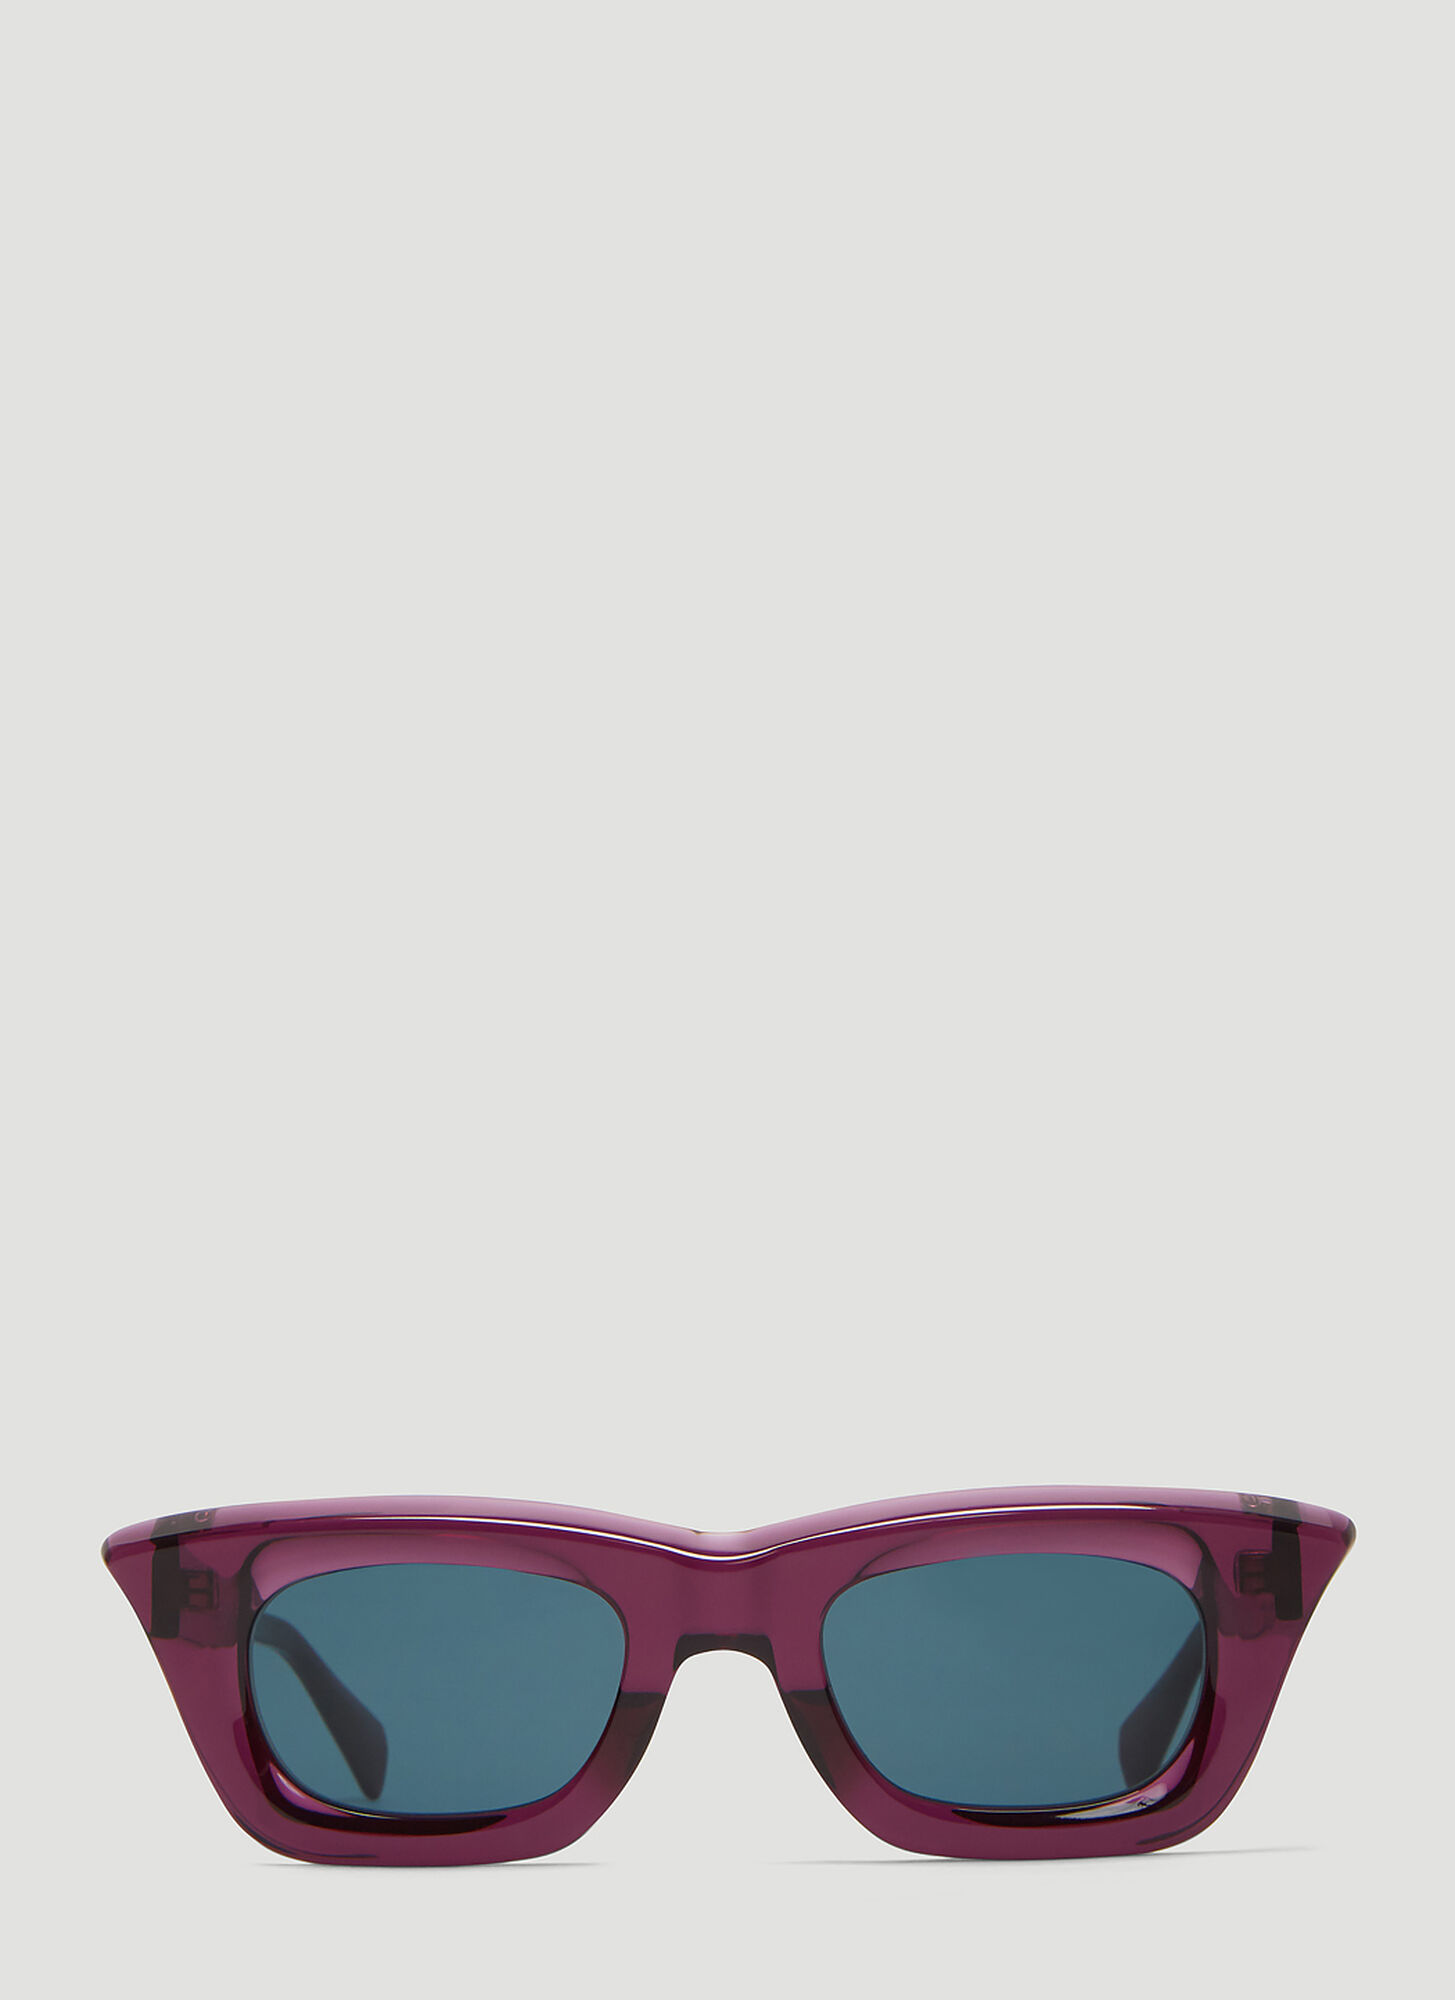 Kuboraum Mask C20 Sunglasses in Purple